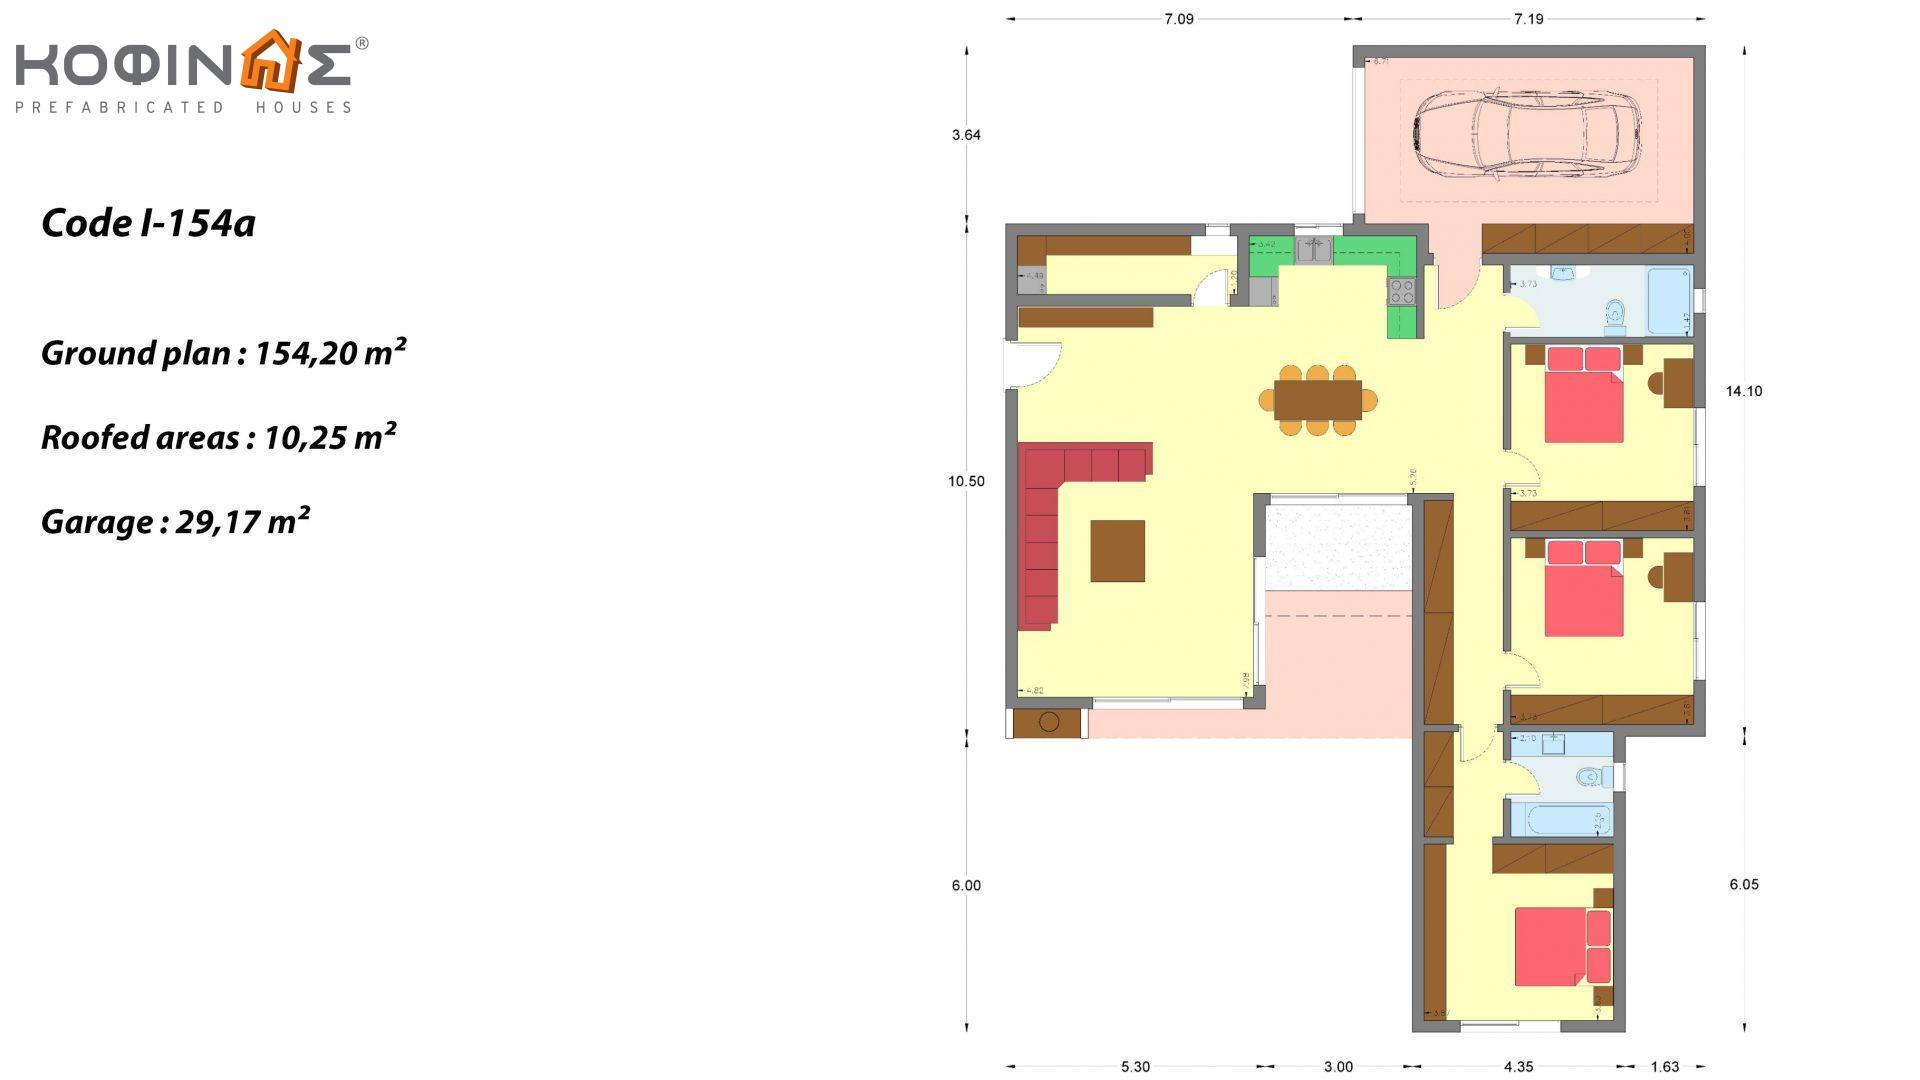 1-story house Ι-154a, total surface of 154,20 m²,+Garage 29.17 m² (=183,37 m²), roofed areas 10,25 m²